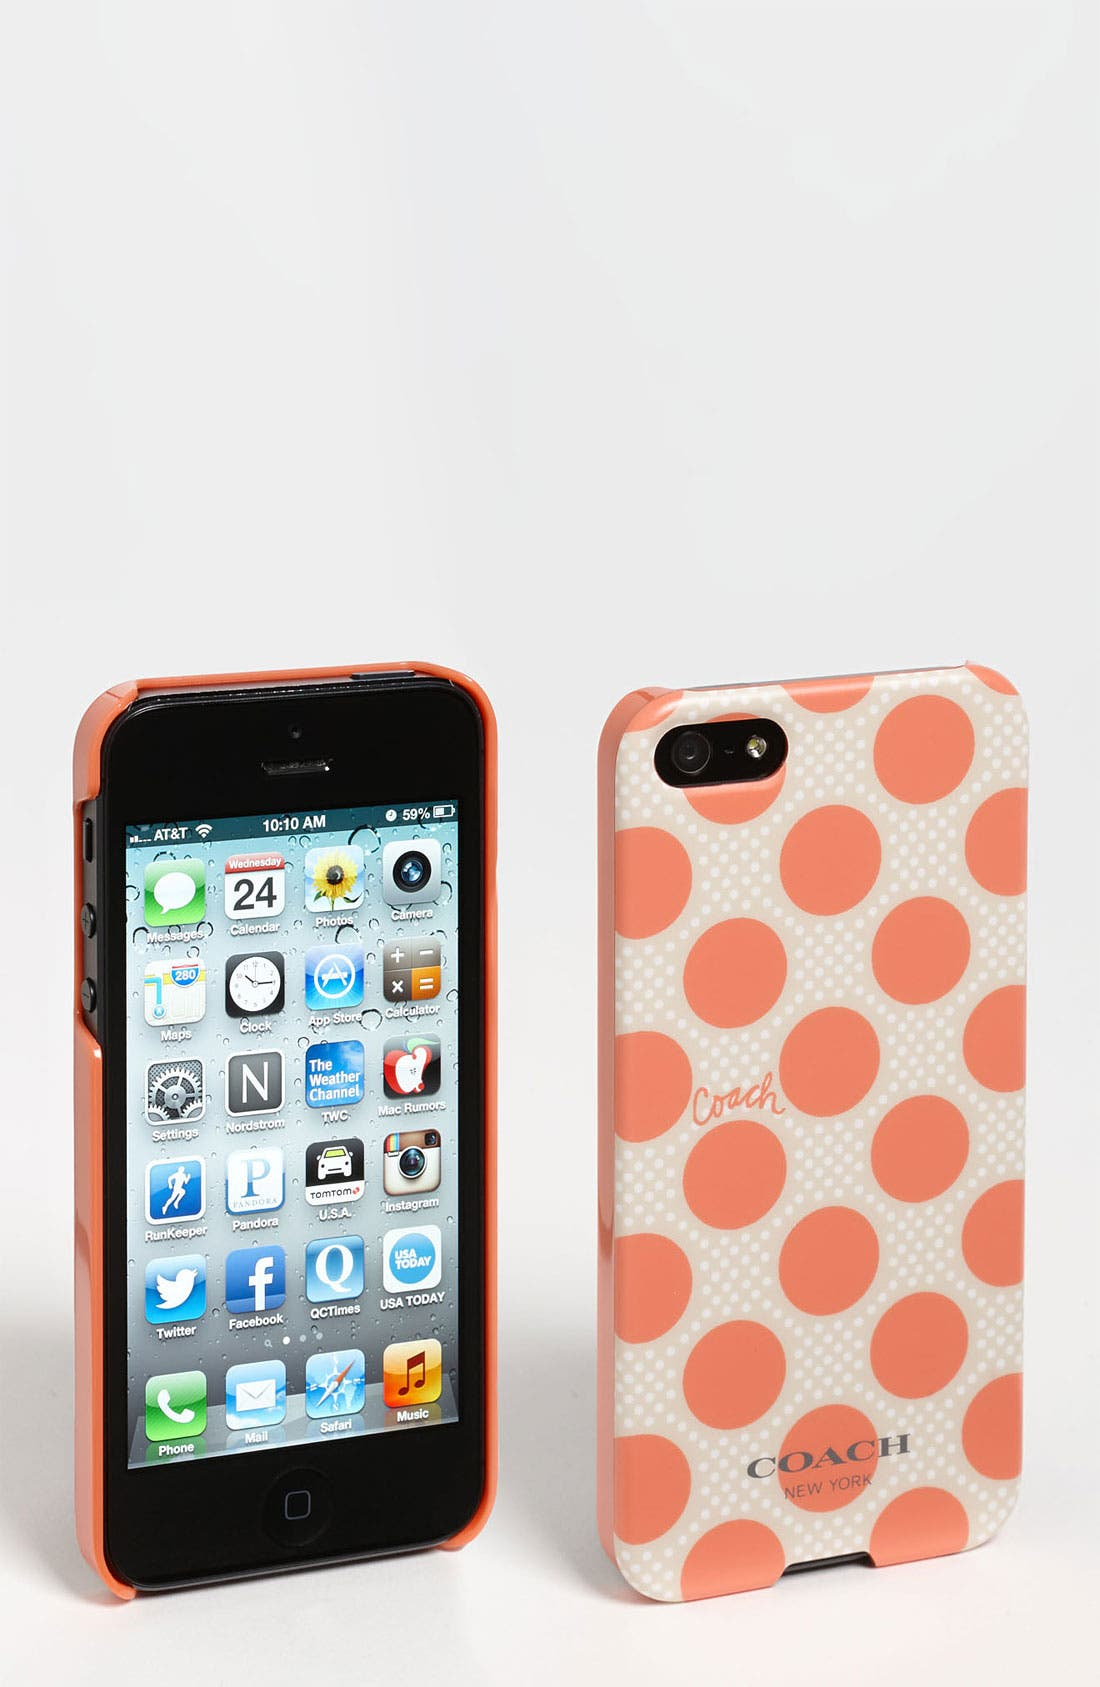 Alternate Image 1 Selected - COACH 'Polka Dot' iPhone 5 Case